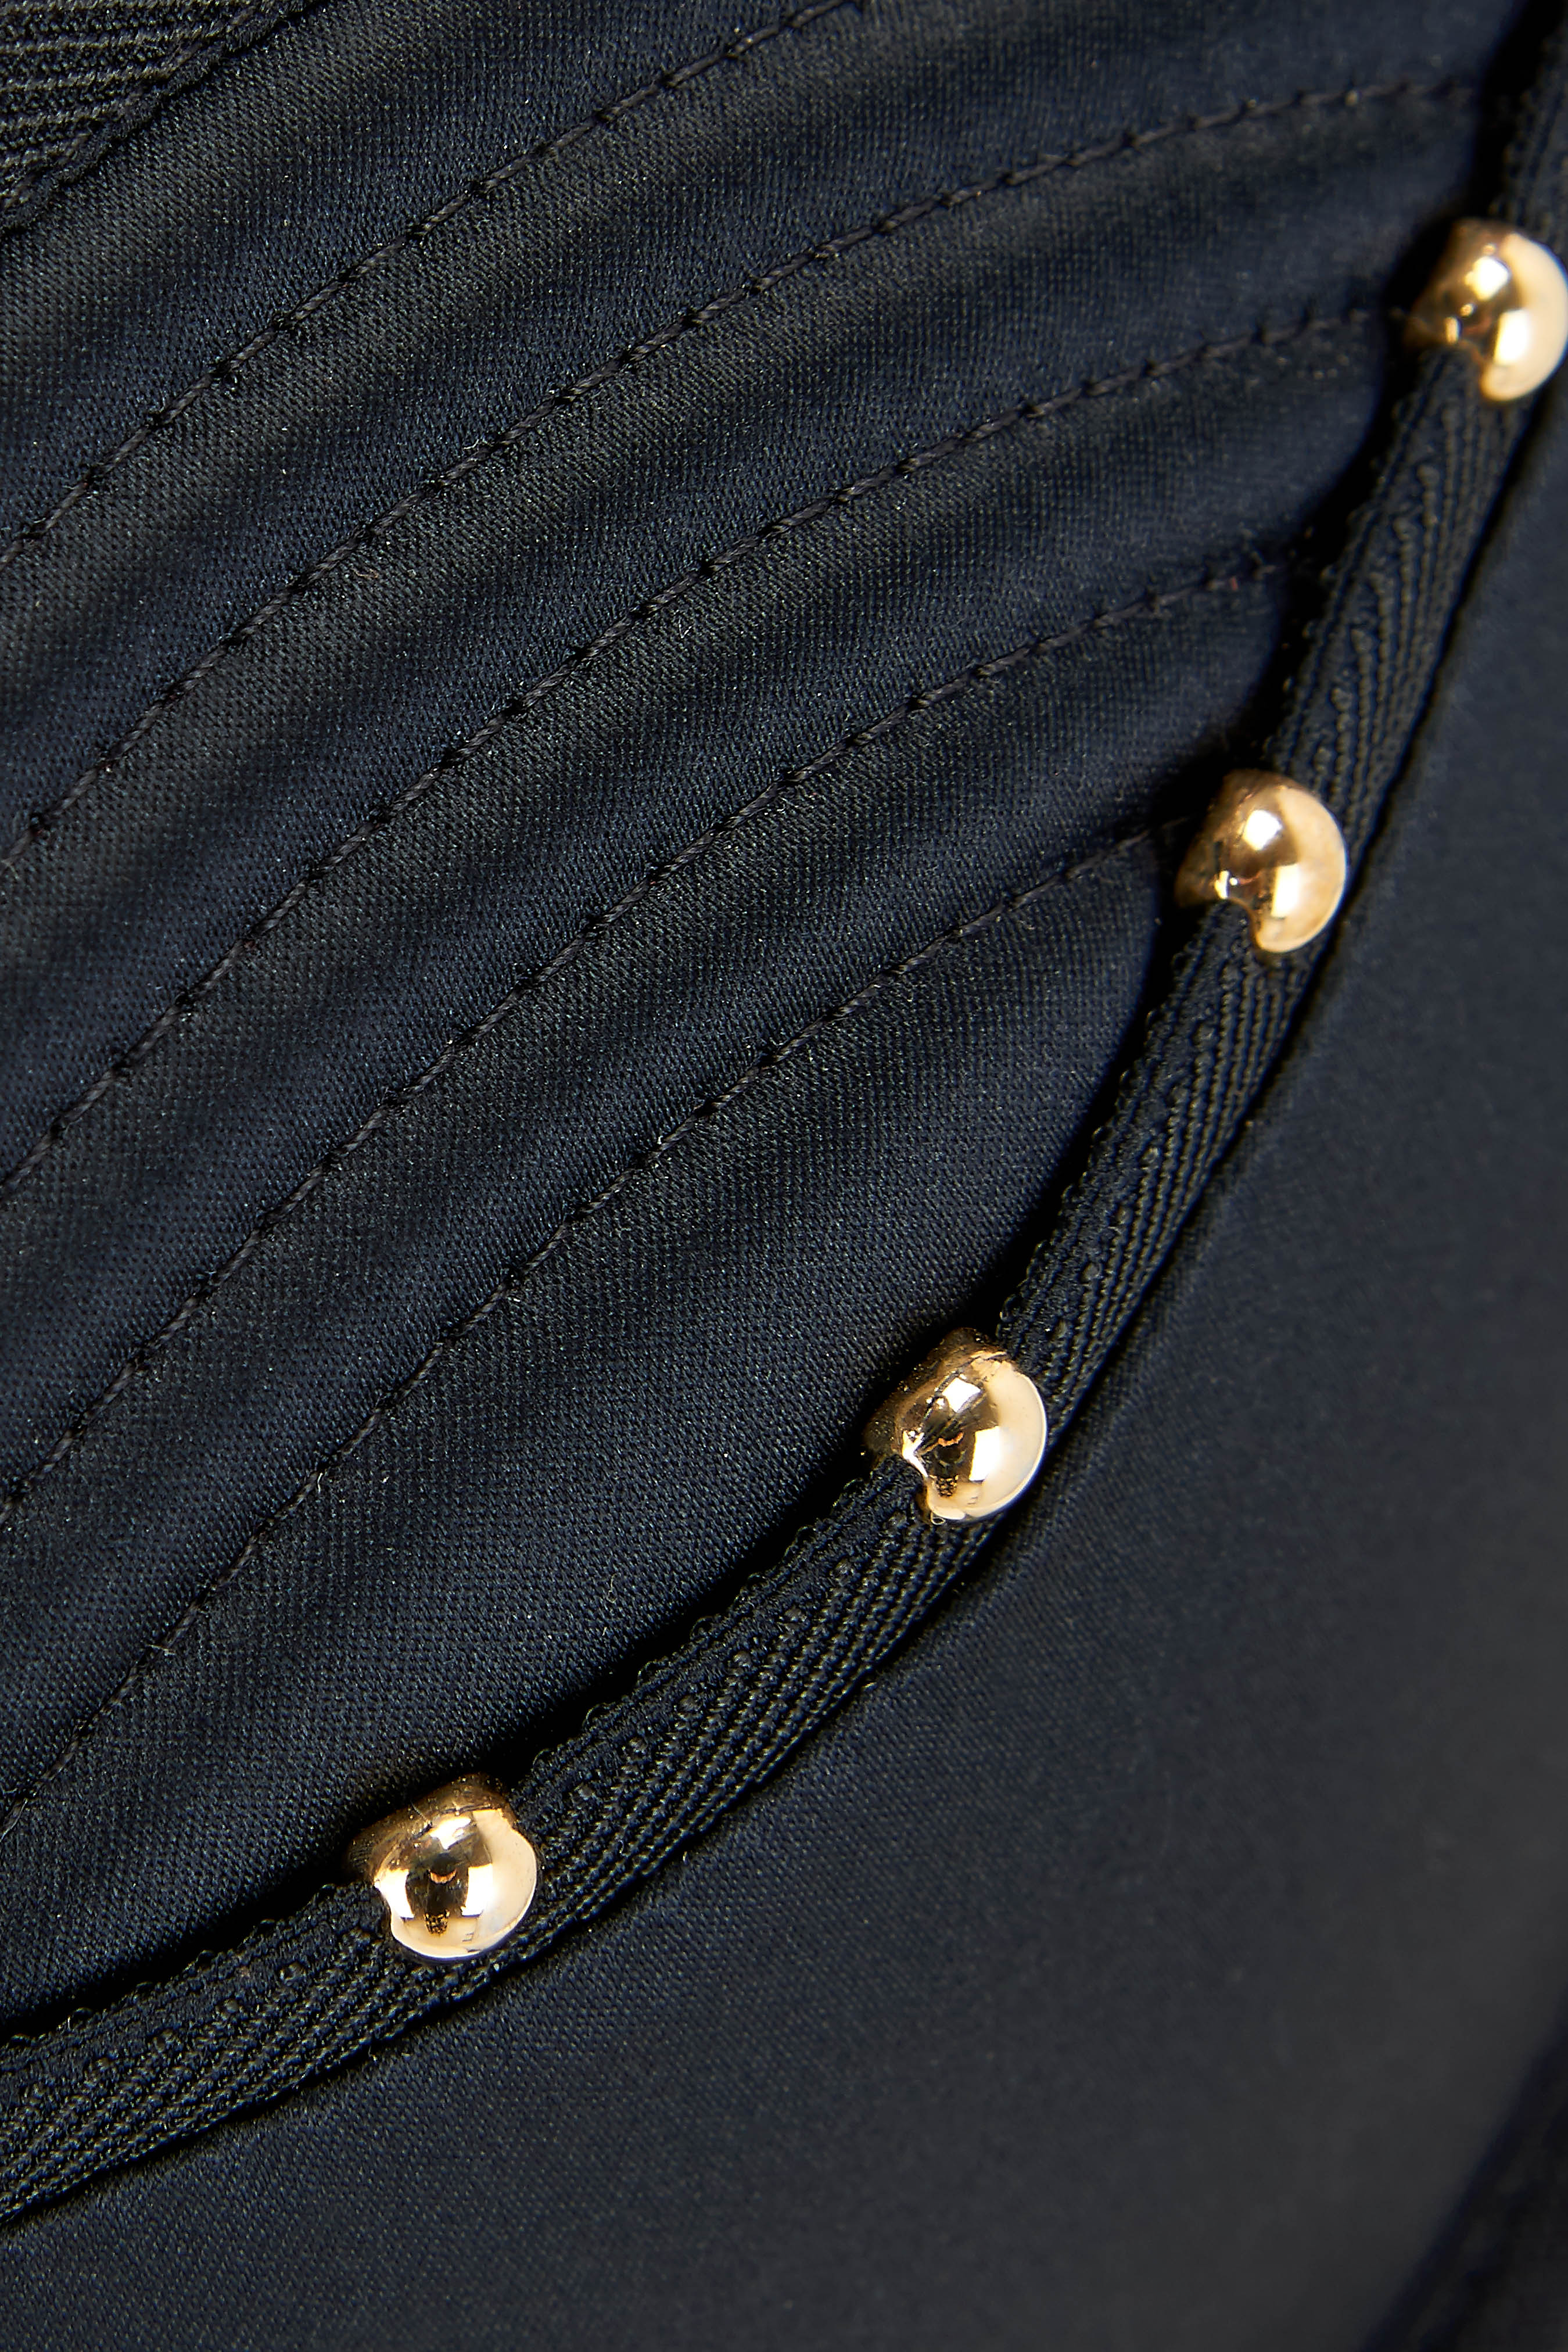 Close up details of gold studding and quilting on the Babooshka suspender